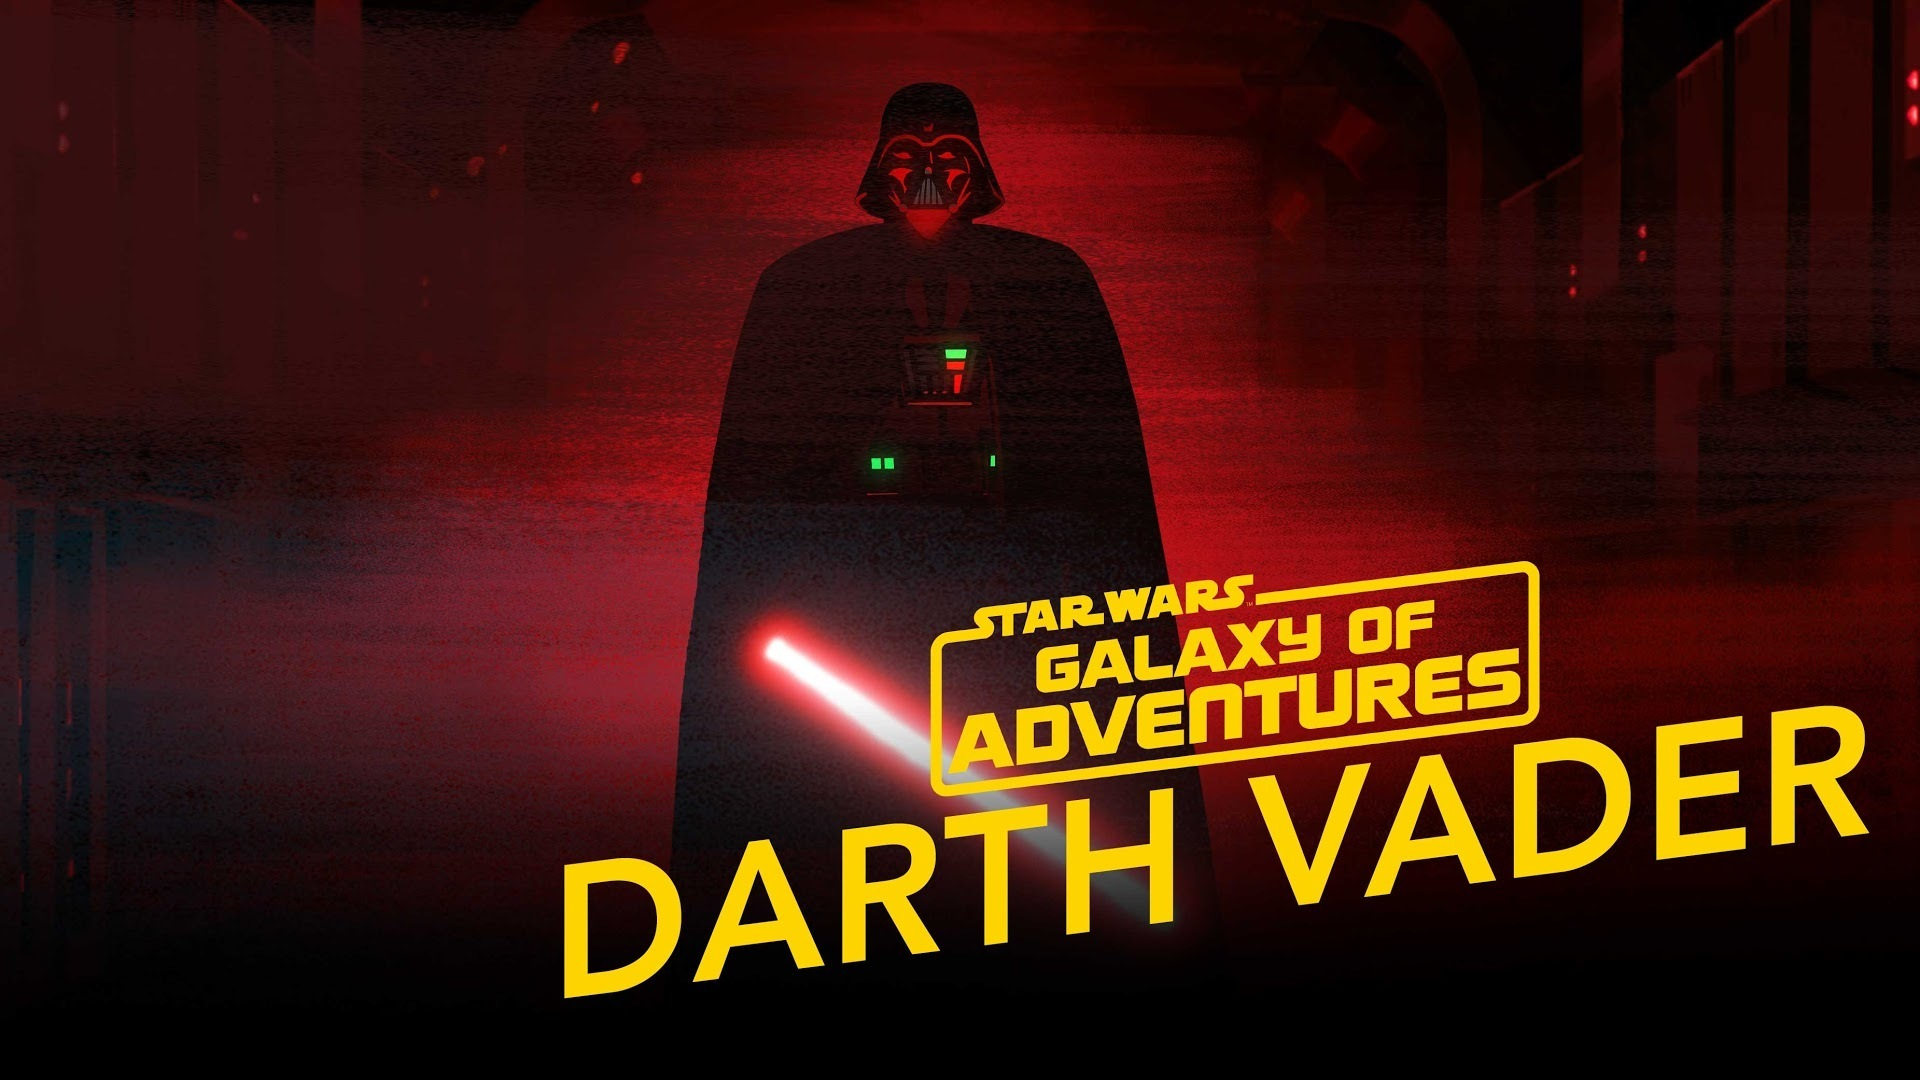 Darth Vader - Power of the Dark Side | Star Wars Galaxy of Adventures